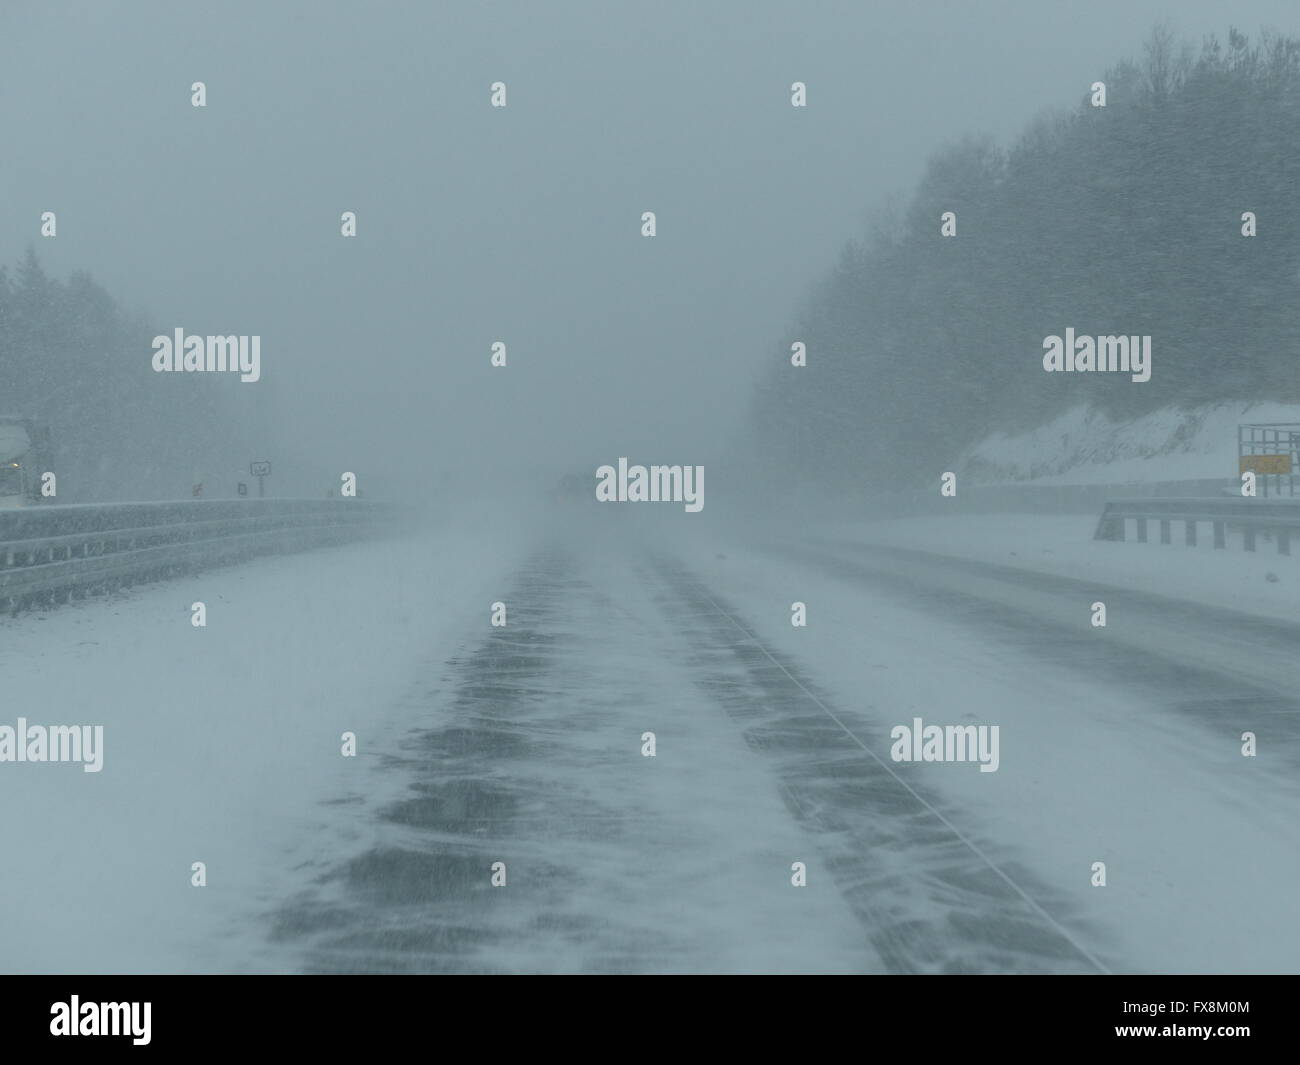 Highway in winter, slippery, dangerous driving conditions - Stock Image